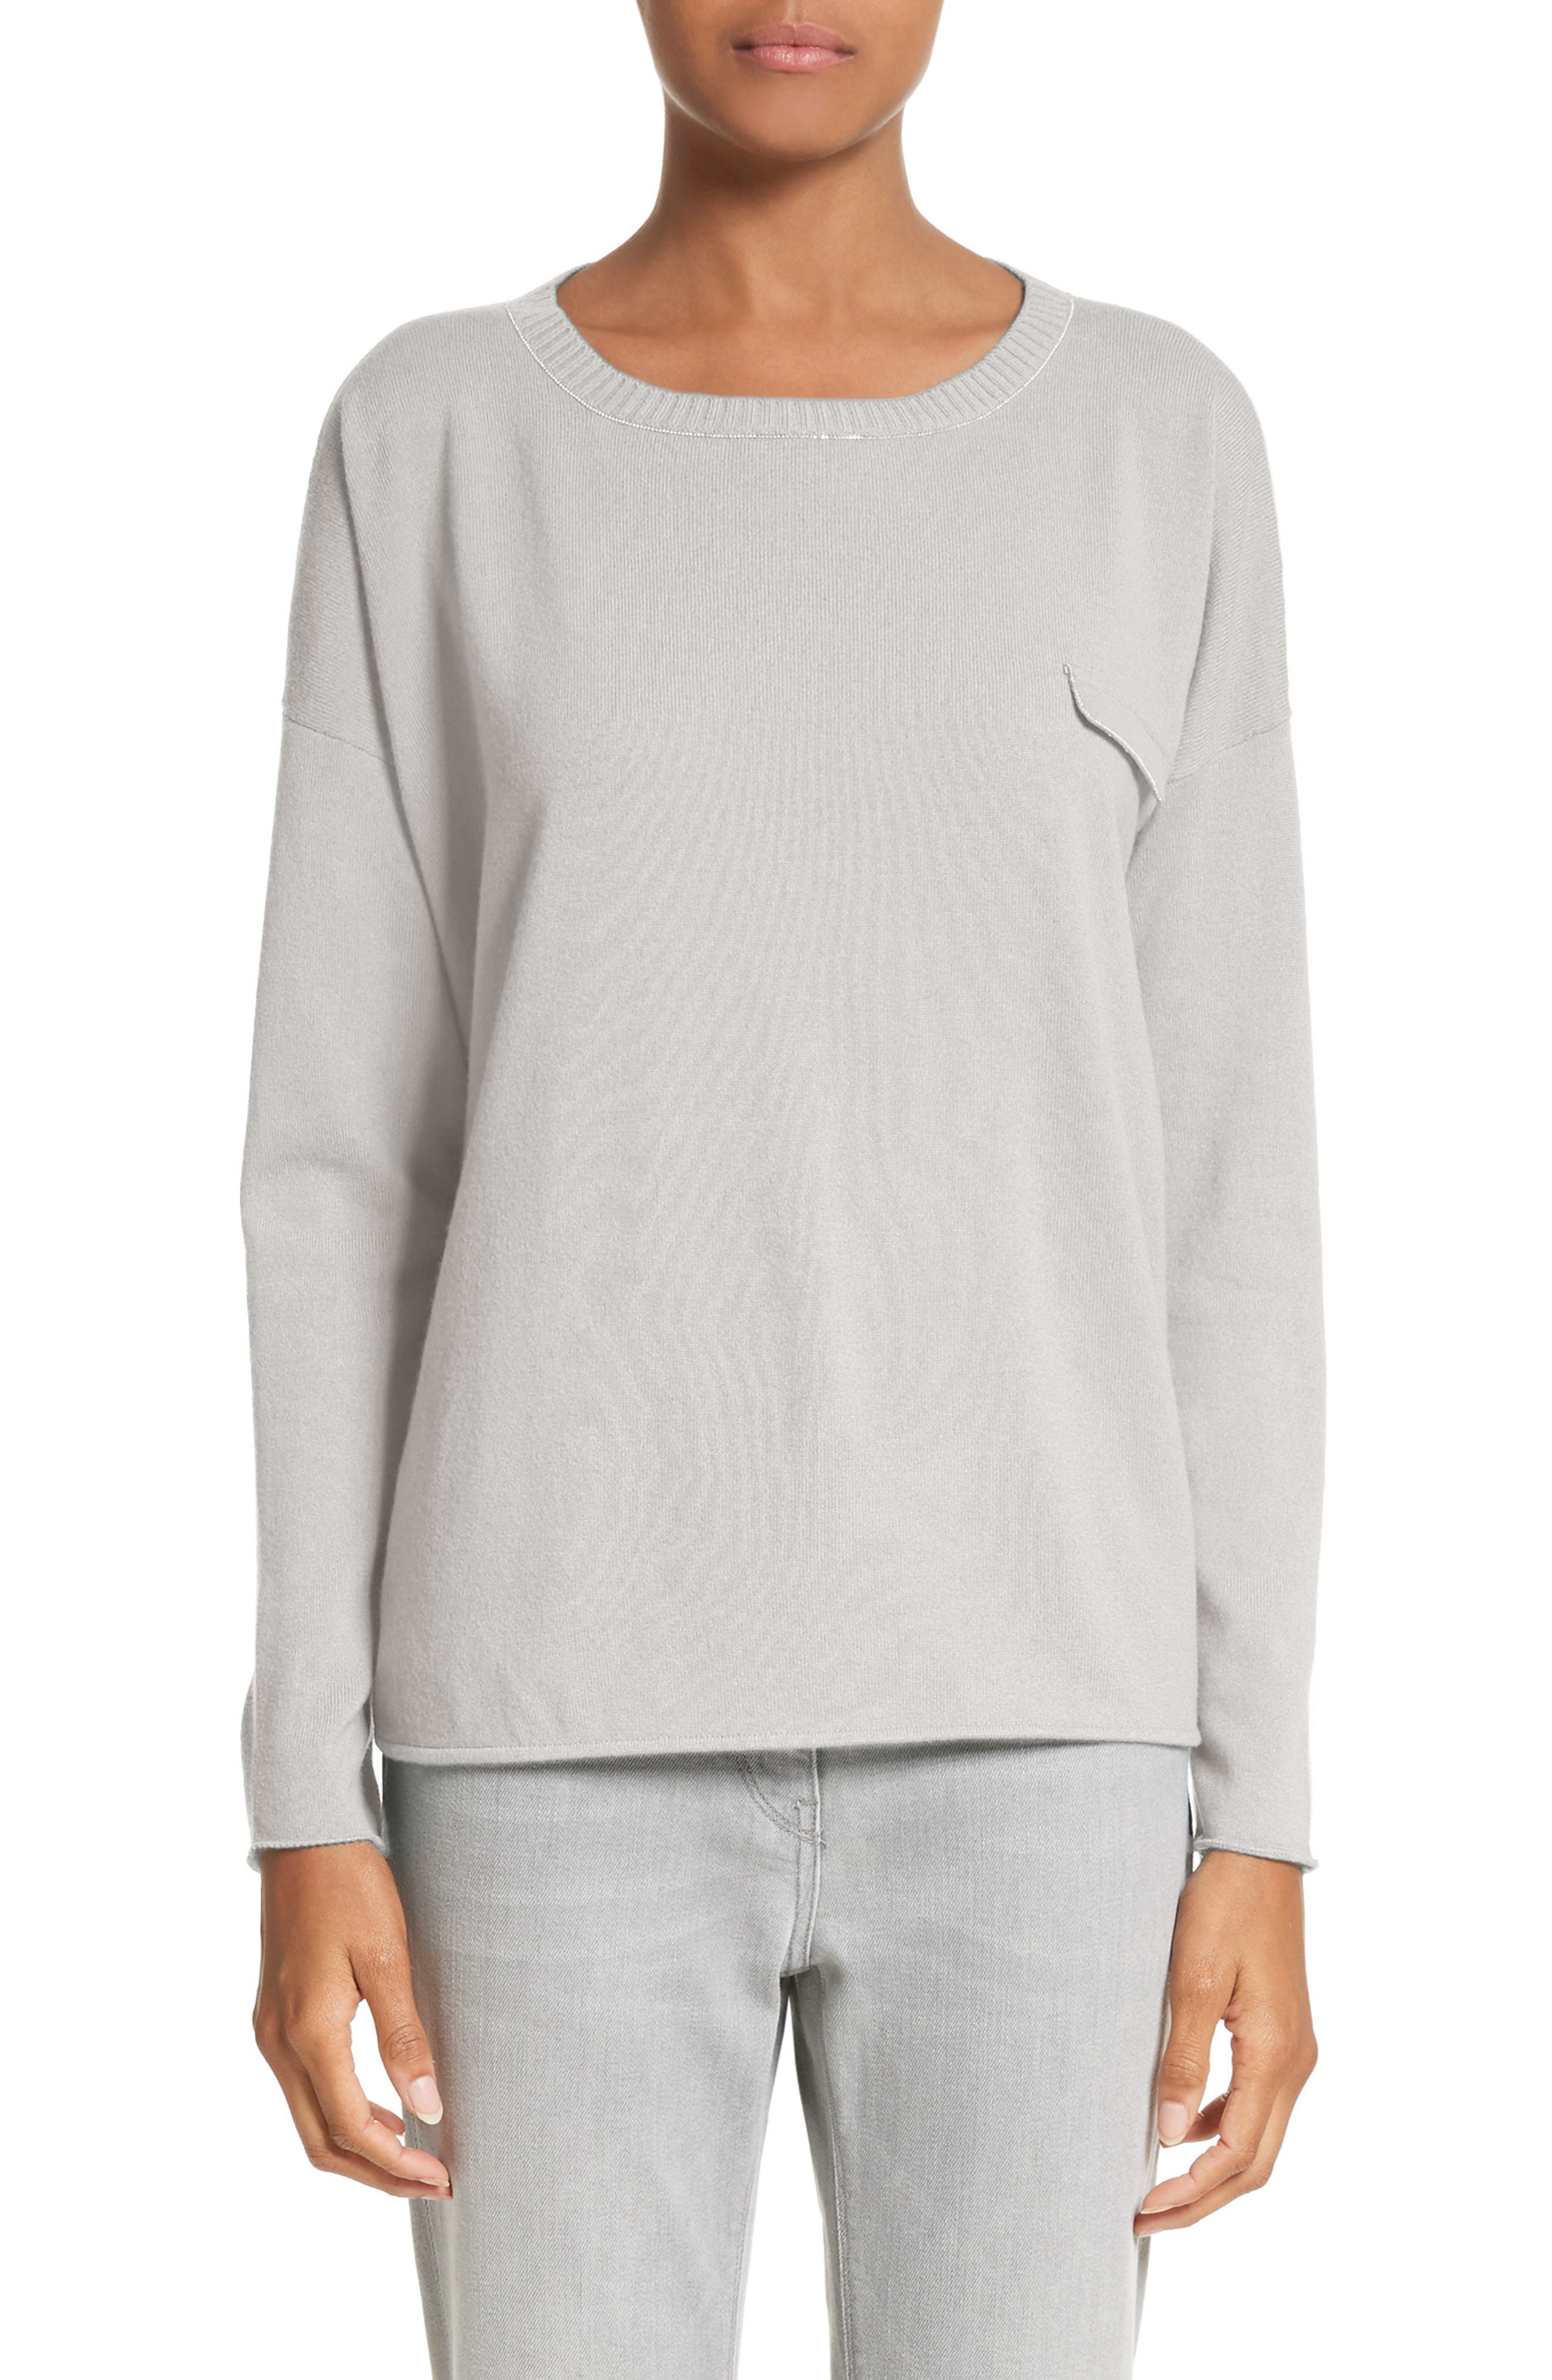 Beaded Cashmere Sweater,                             Main thumbnail 1, color,                             Grey